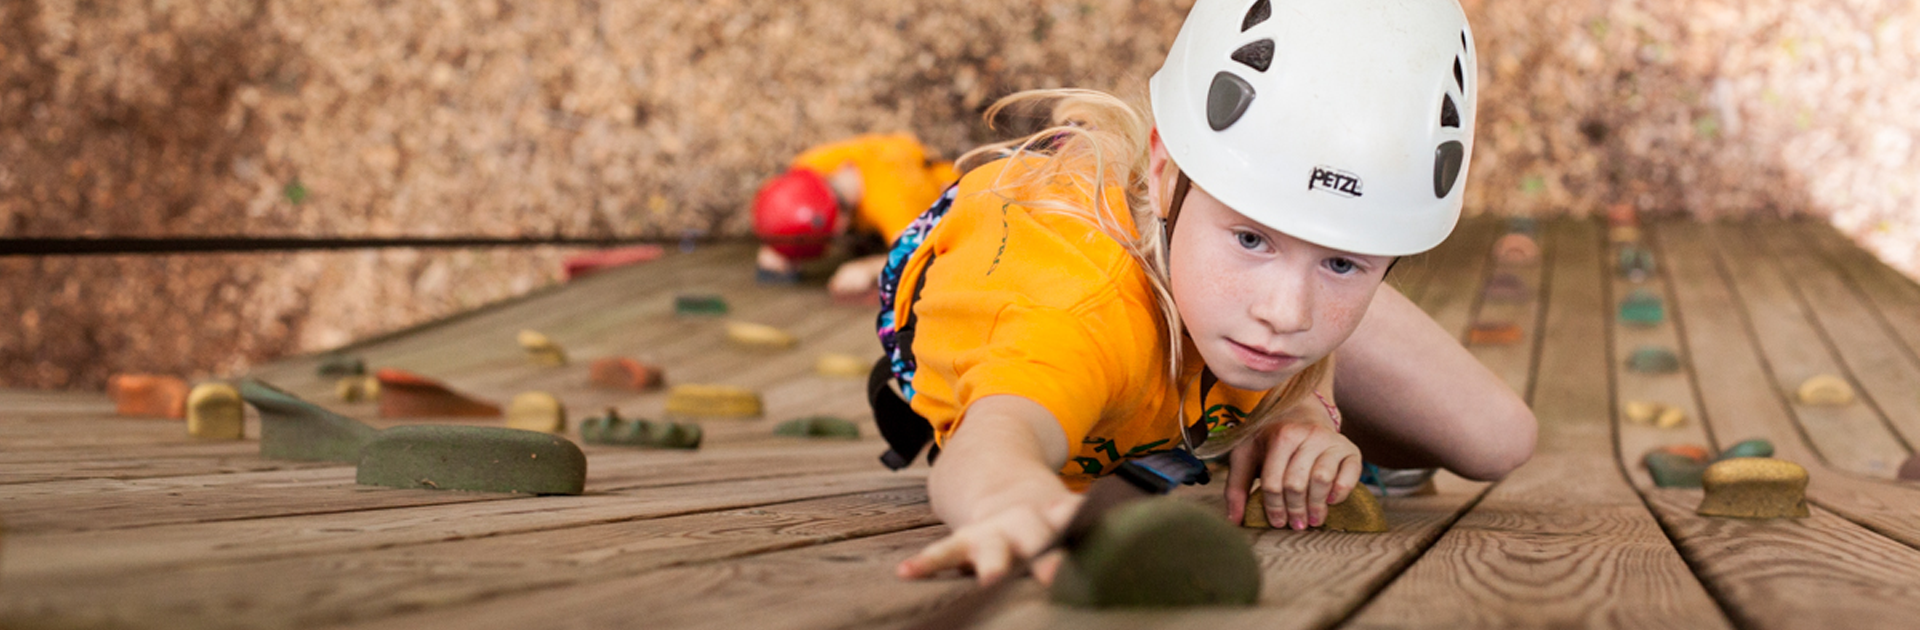 young camper rock climbing